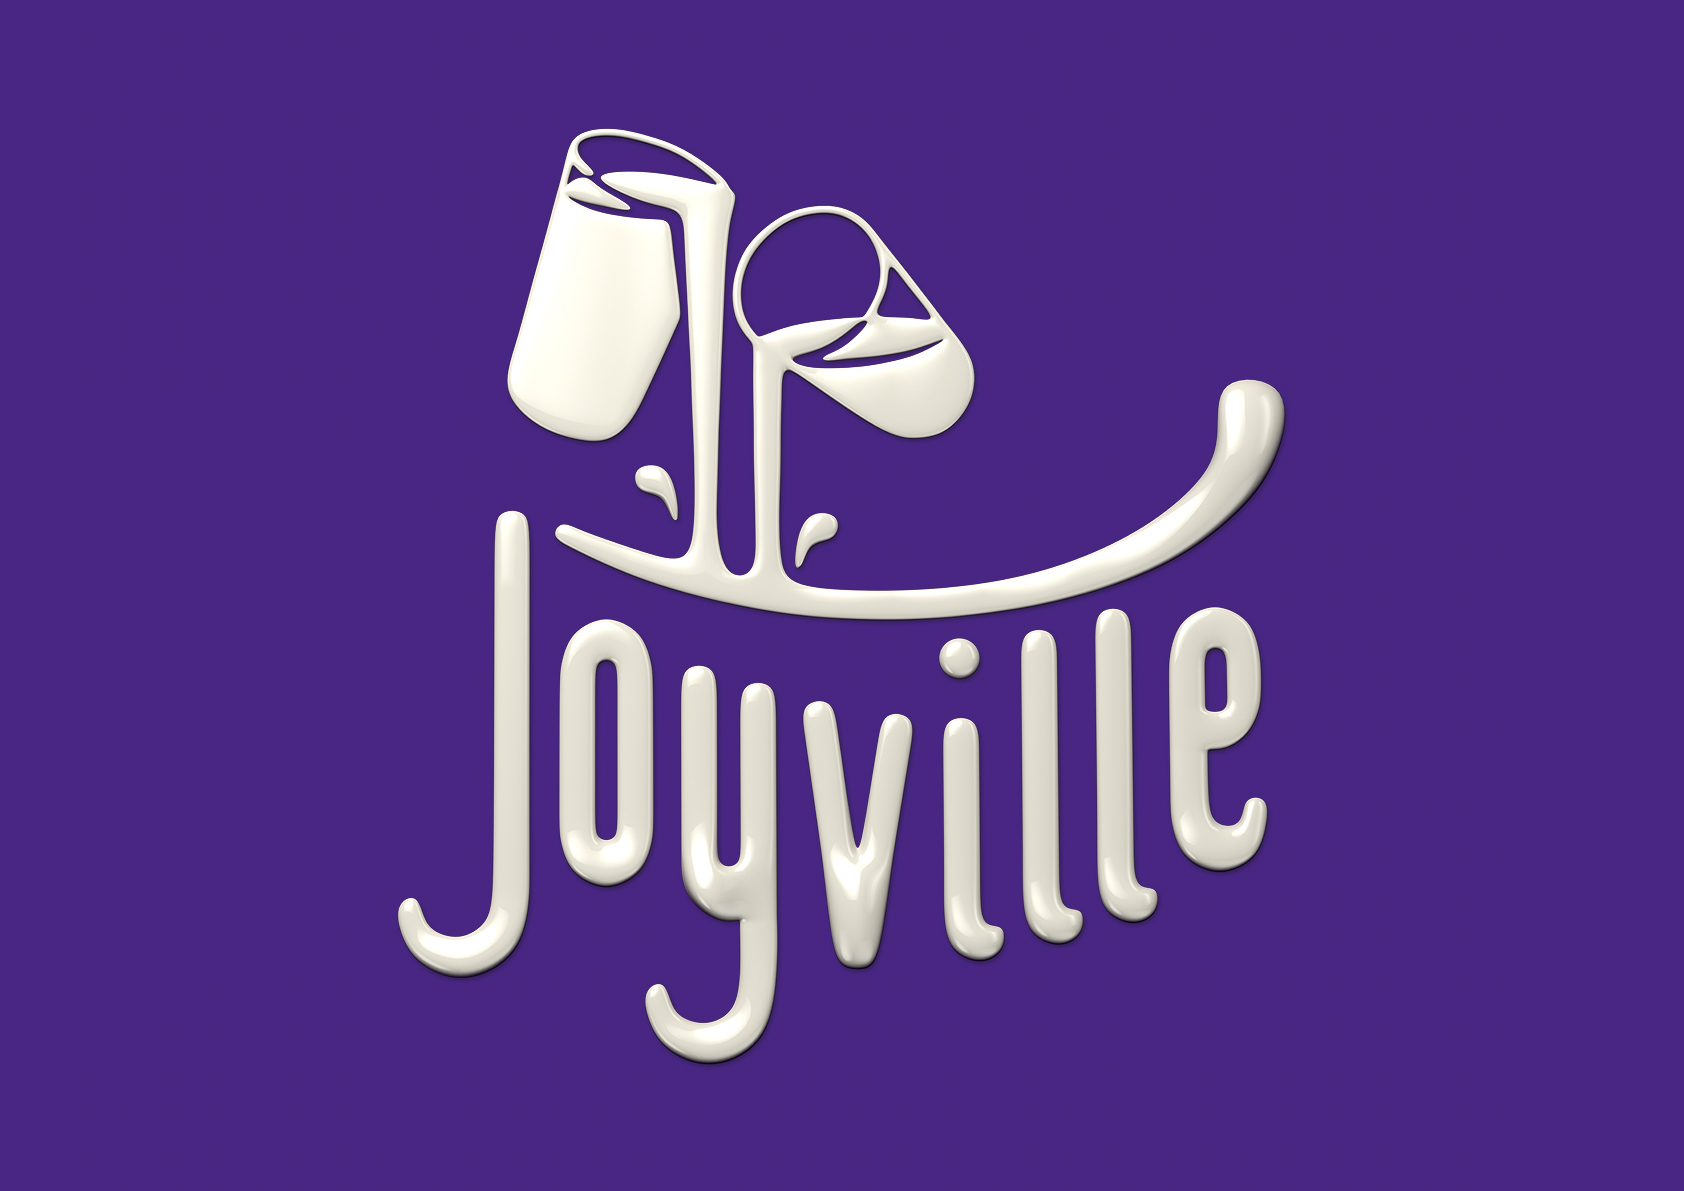 Joyville_Milk.jpg